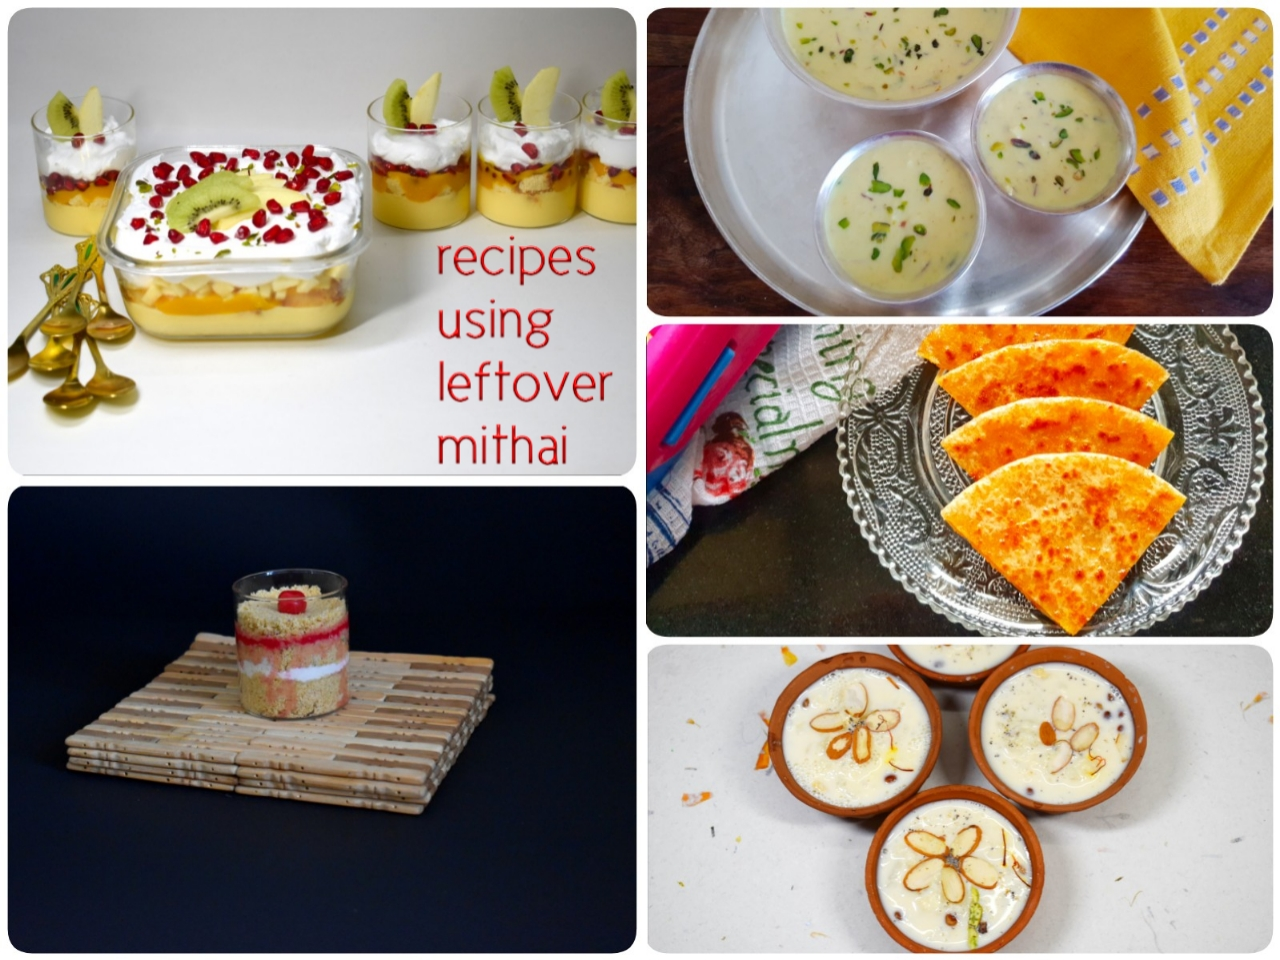 recipes using leftover mithai